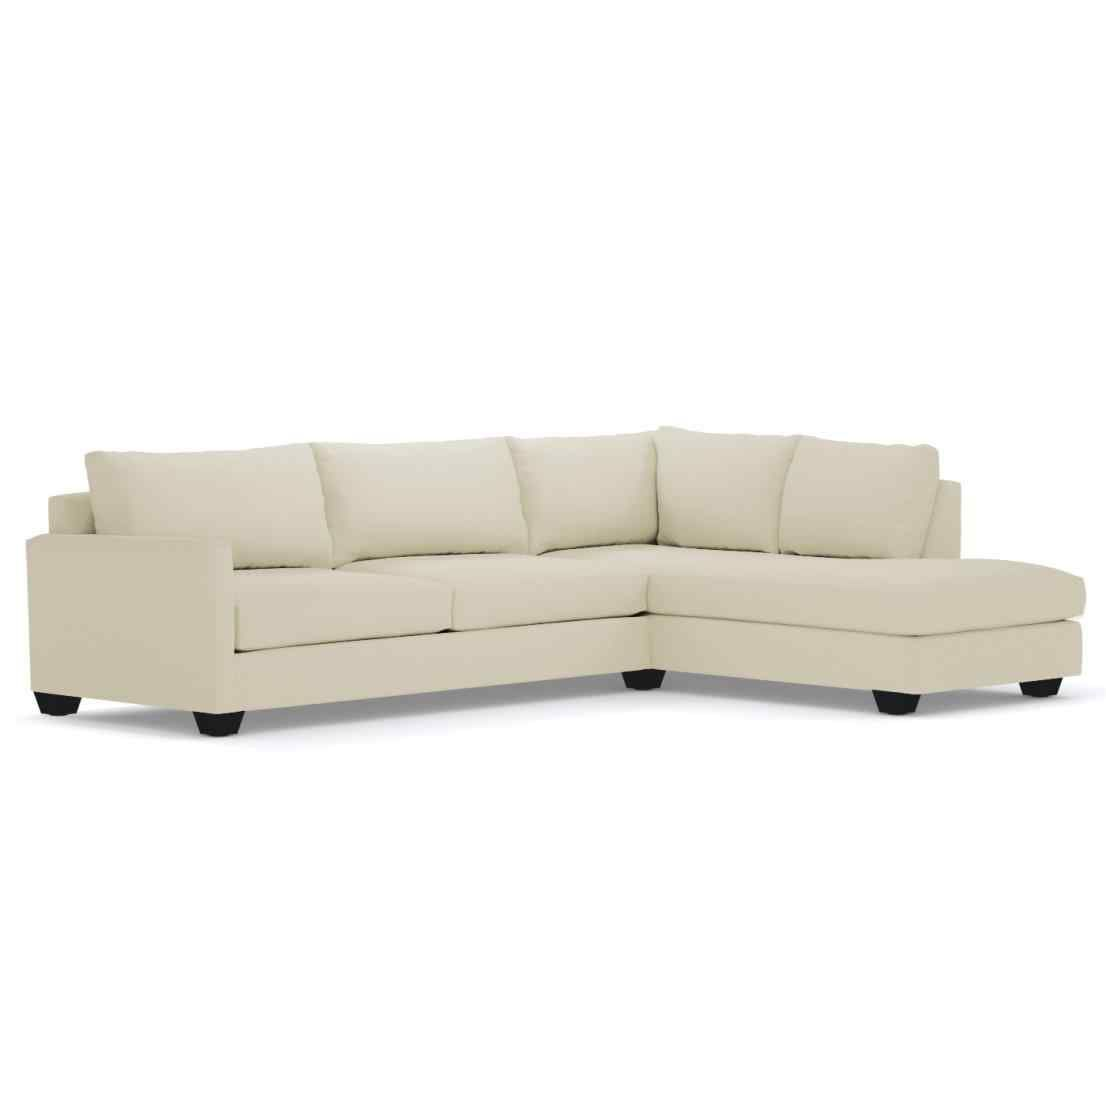 S Albany Industries Sectional Sofa Jackson Mississippi Store In Albany  Industries Sectional Sofa By Grants Nm Fifth Avenue Sleeper Albany  Industries ...